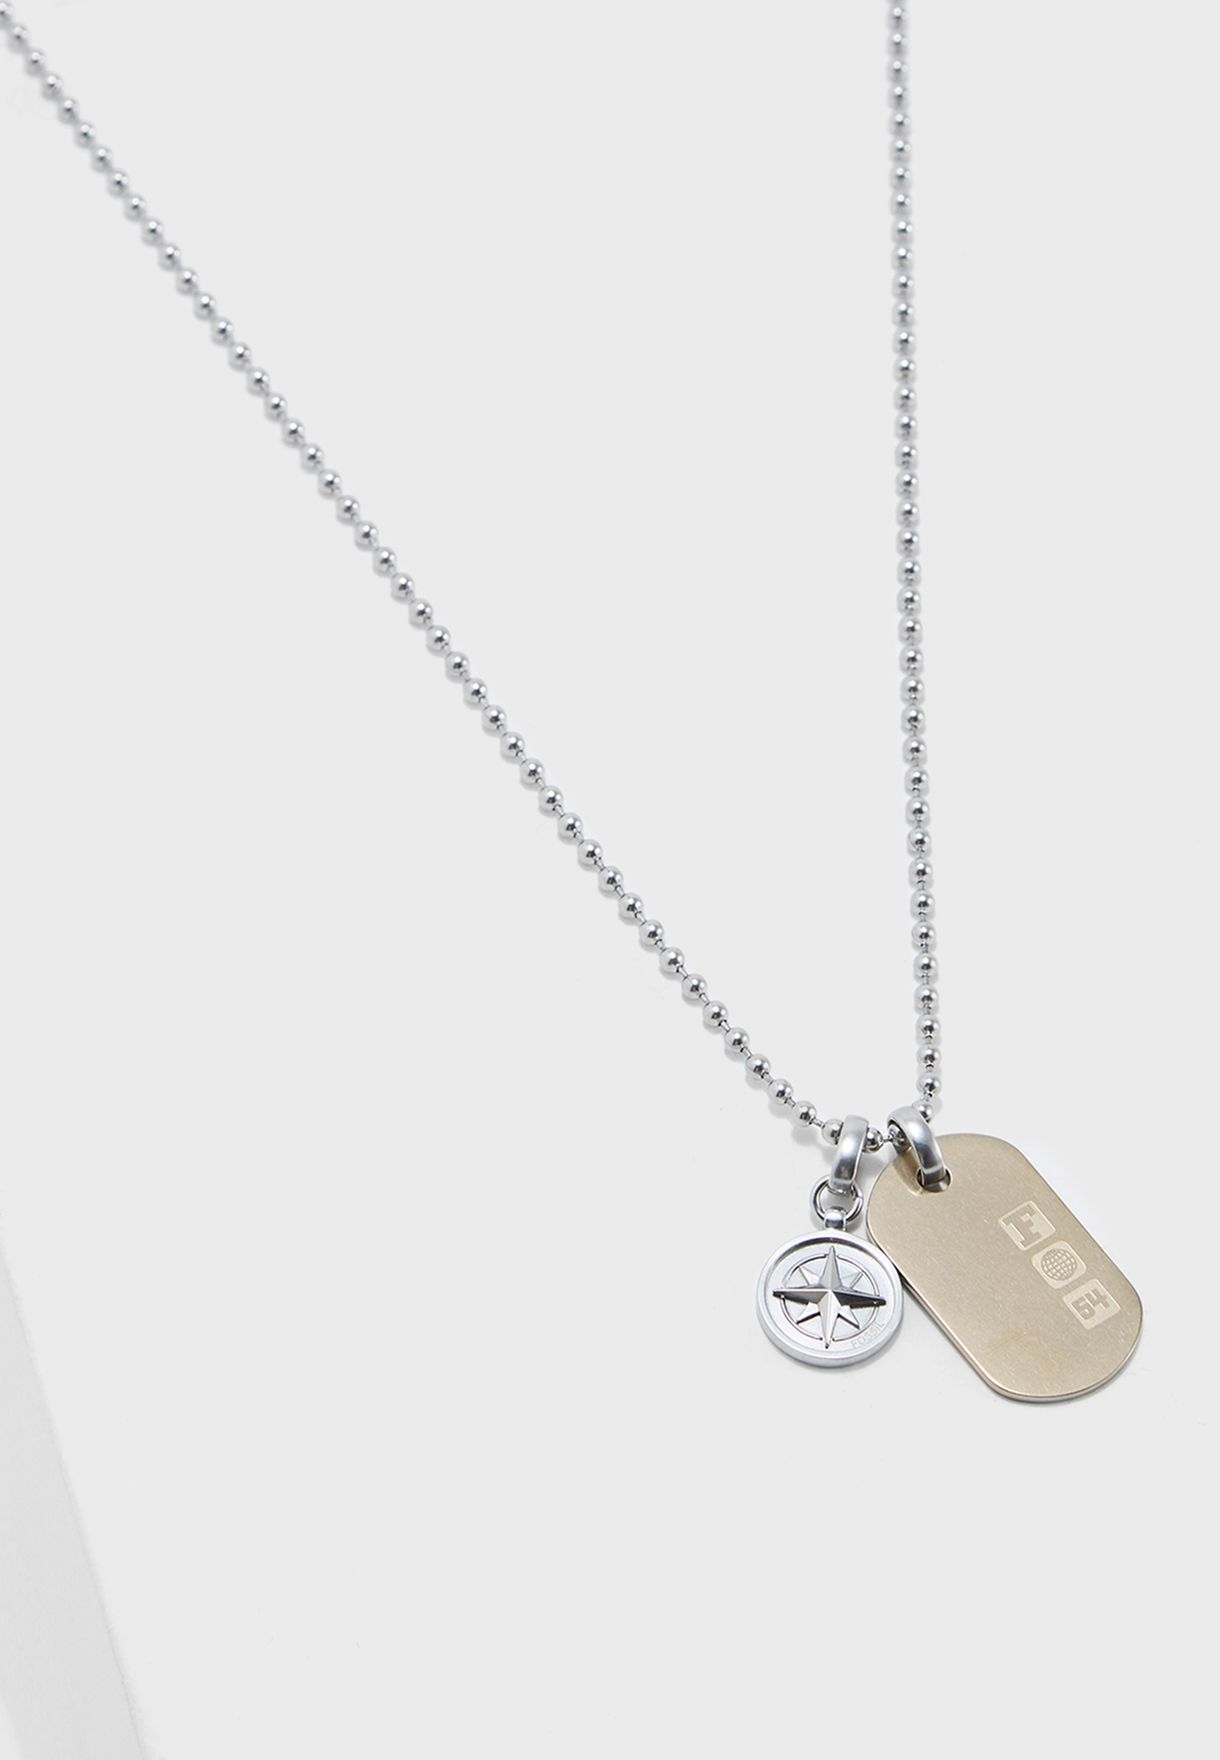 54a72fca159 Shop Fossil silver Dog Tag Necklace JF02762998 for Men in Kuwait -  FO413AC85GPY